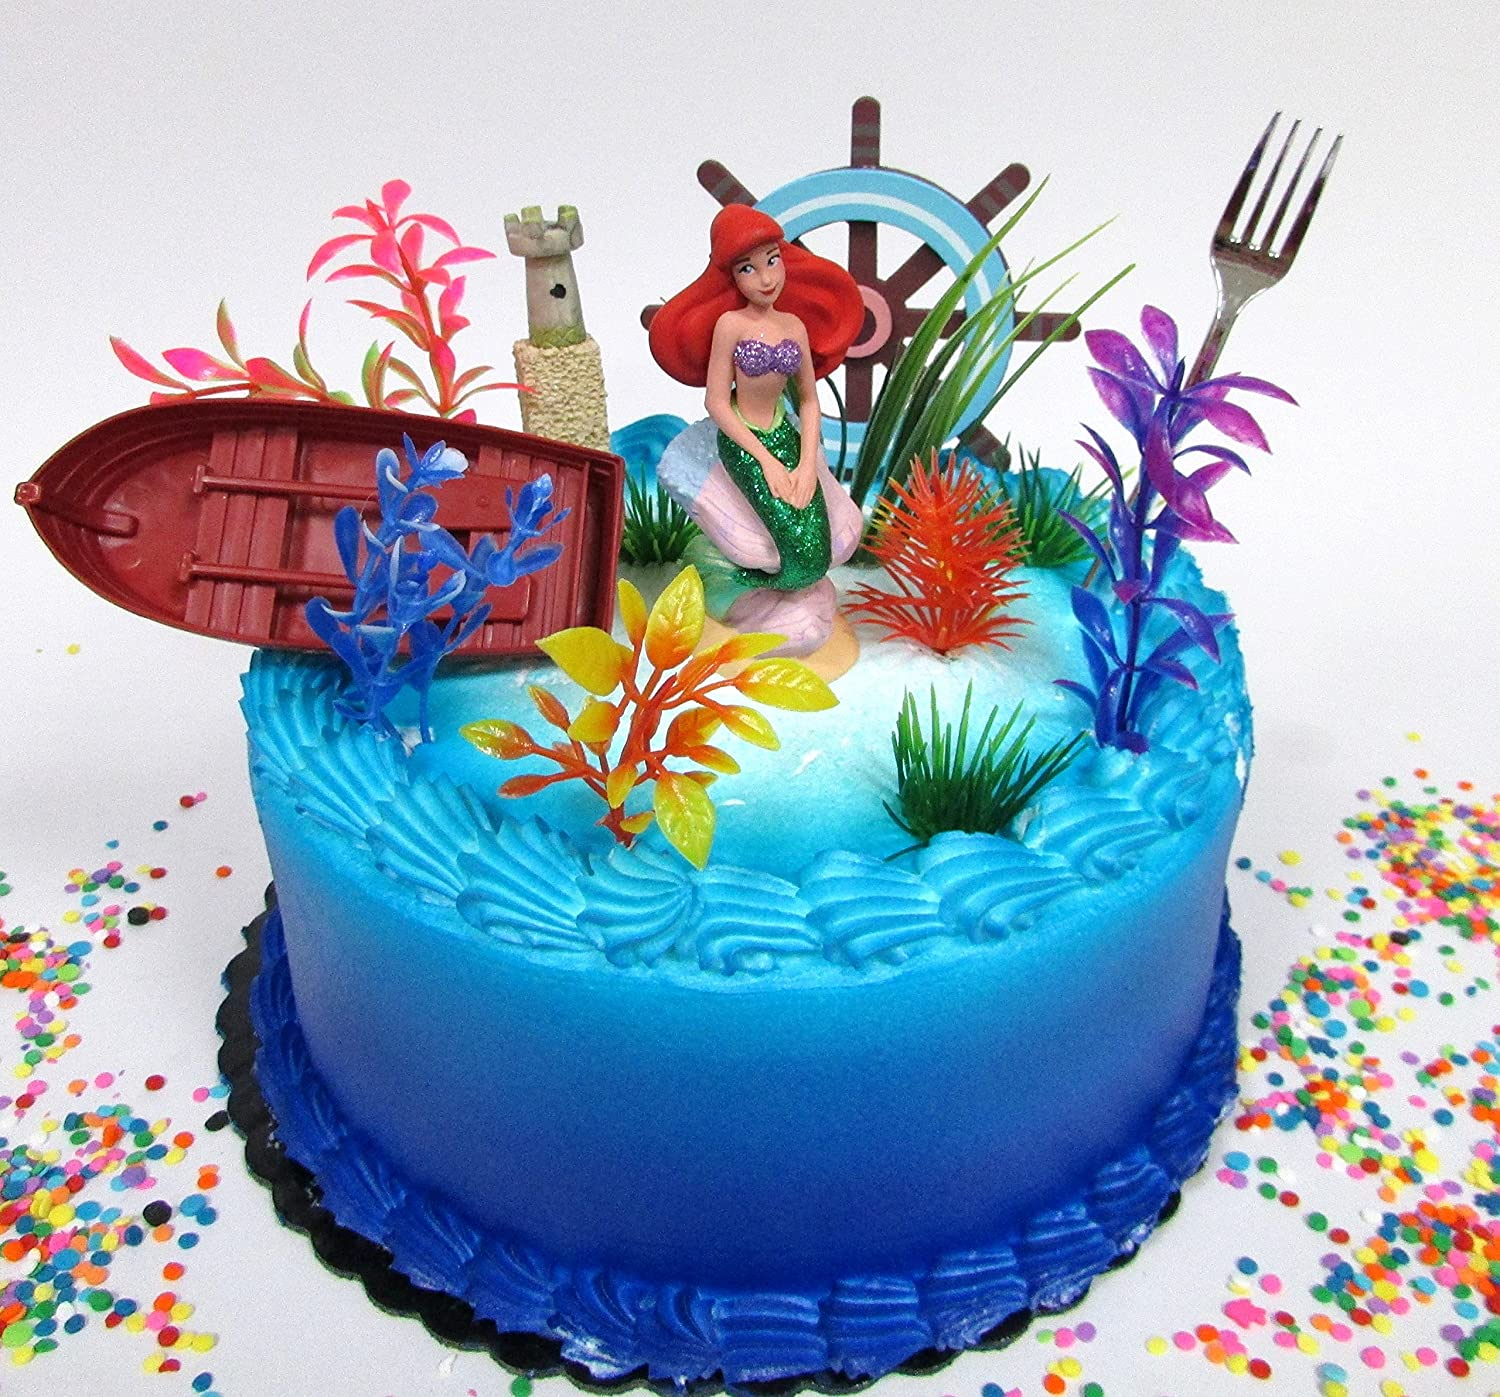 Amazon Little Mermaid PRINCESS ARIEL Themed Birthday Cake Topper Set Featuring Ariel Figure And Decorative Accessories Toys Games